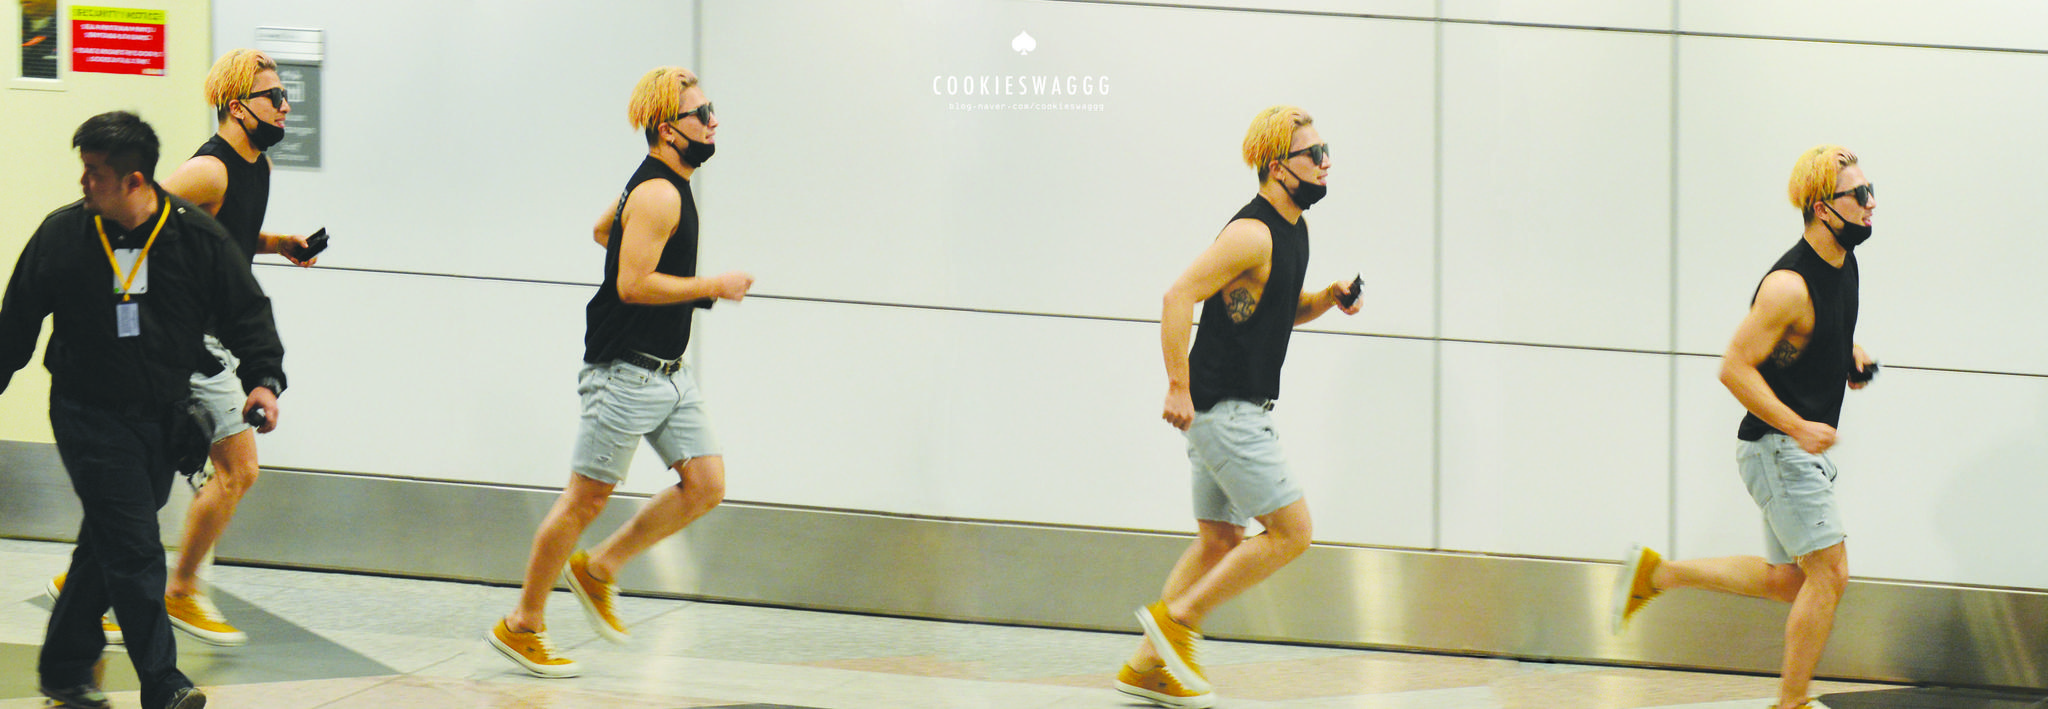 Big Bang - Malaysia Airport - 25jul2015 - cookieswaggg - 17.jpg